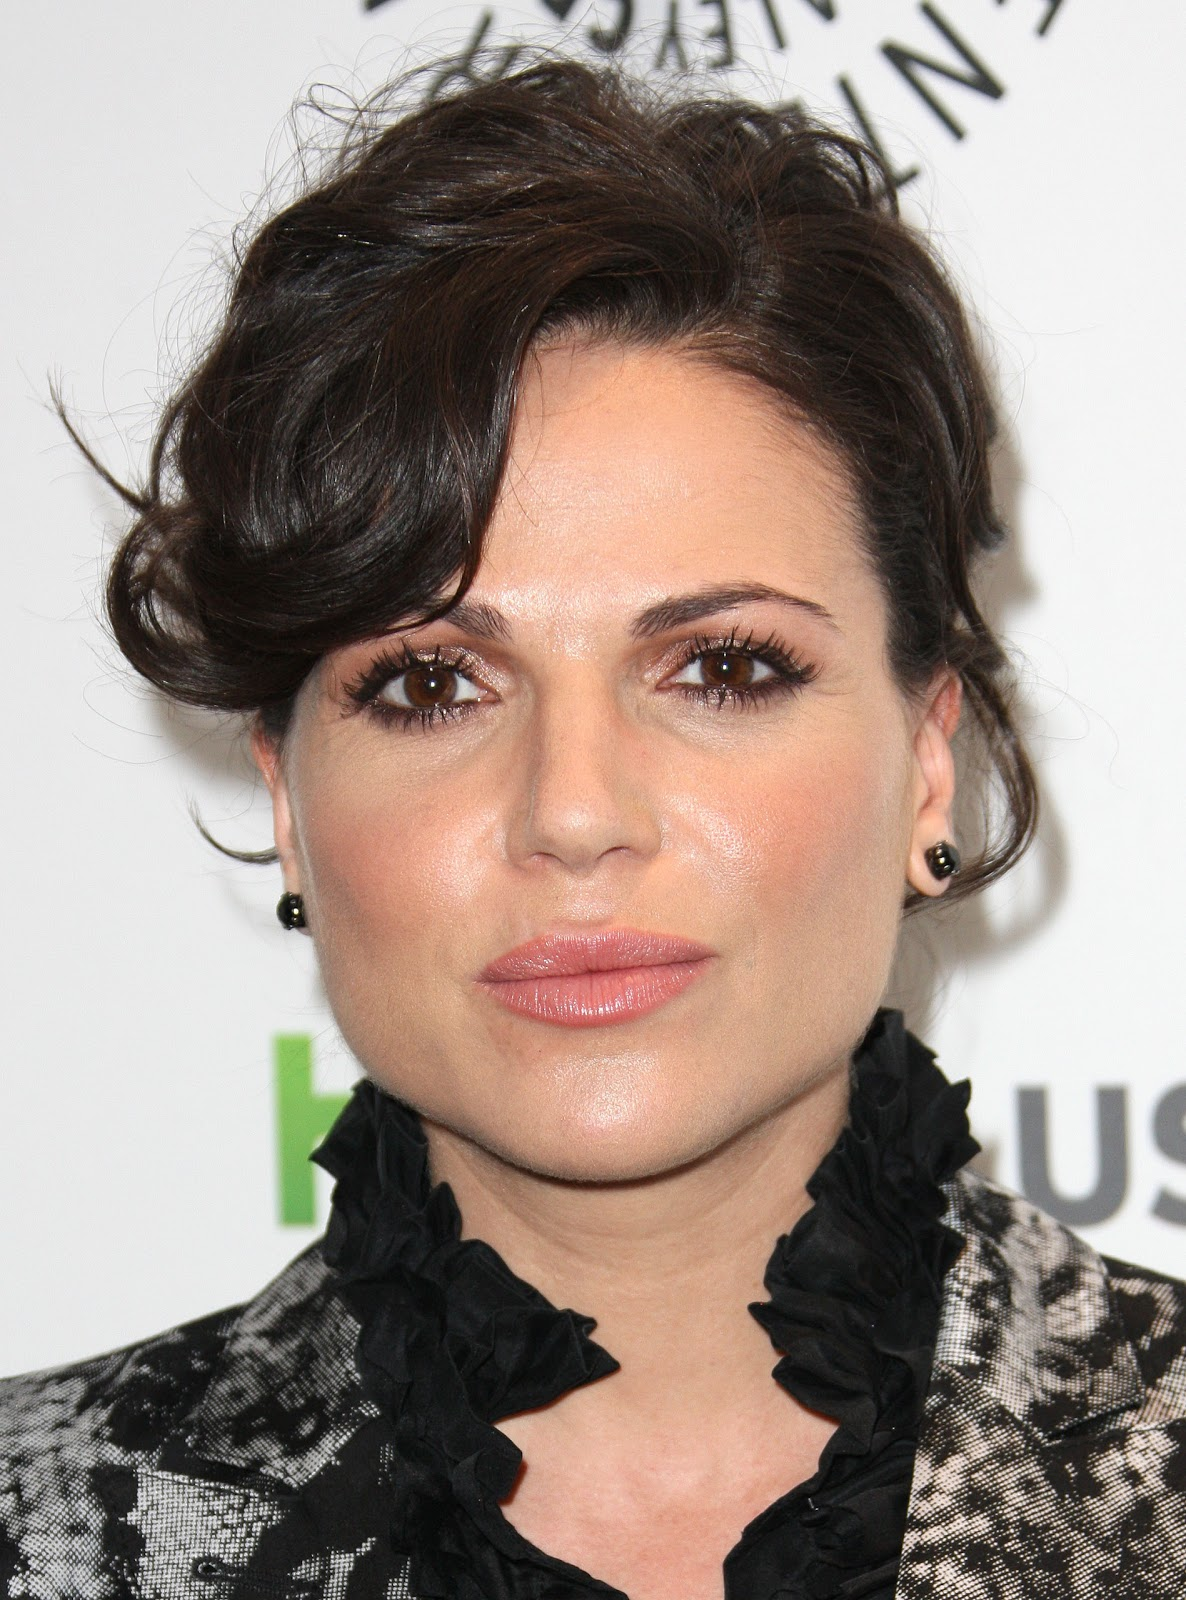 http://1.bp.blogspot.com/-BWRJVfF6SEE/T1SQsWX1SzI/AAAAAAAAA7A/ri1C7GhQeSM/s1600/Lana+Parrilla+-+PaleyFest+honoring+Once+Upon+a+Time+in+Beverly+Hills+-+March+4,+2012.jpg